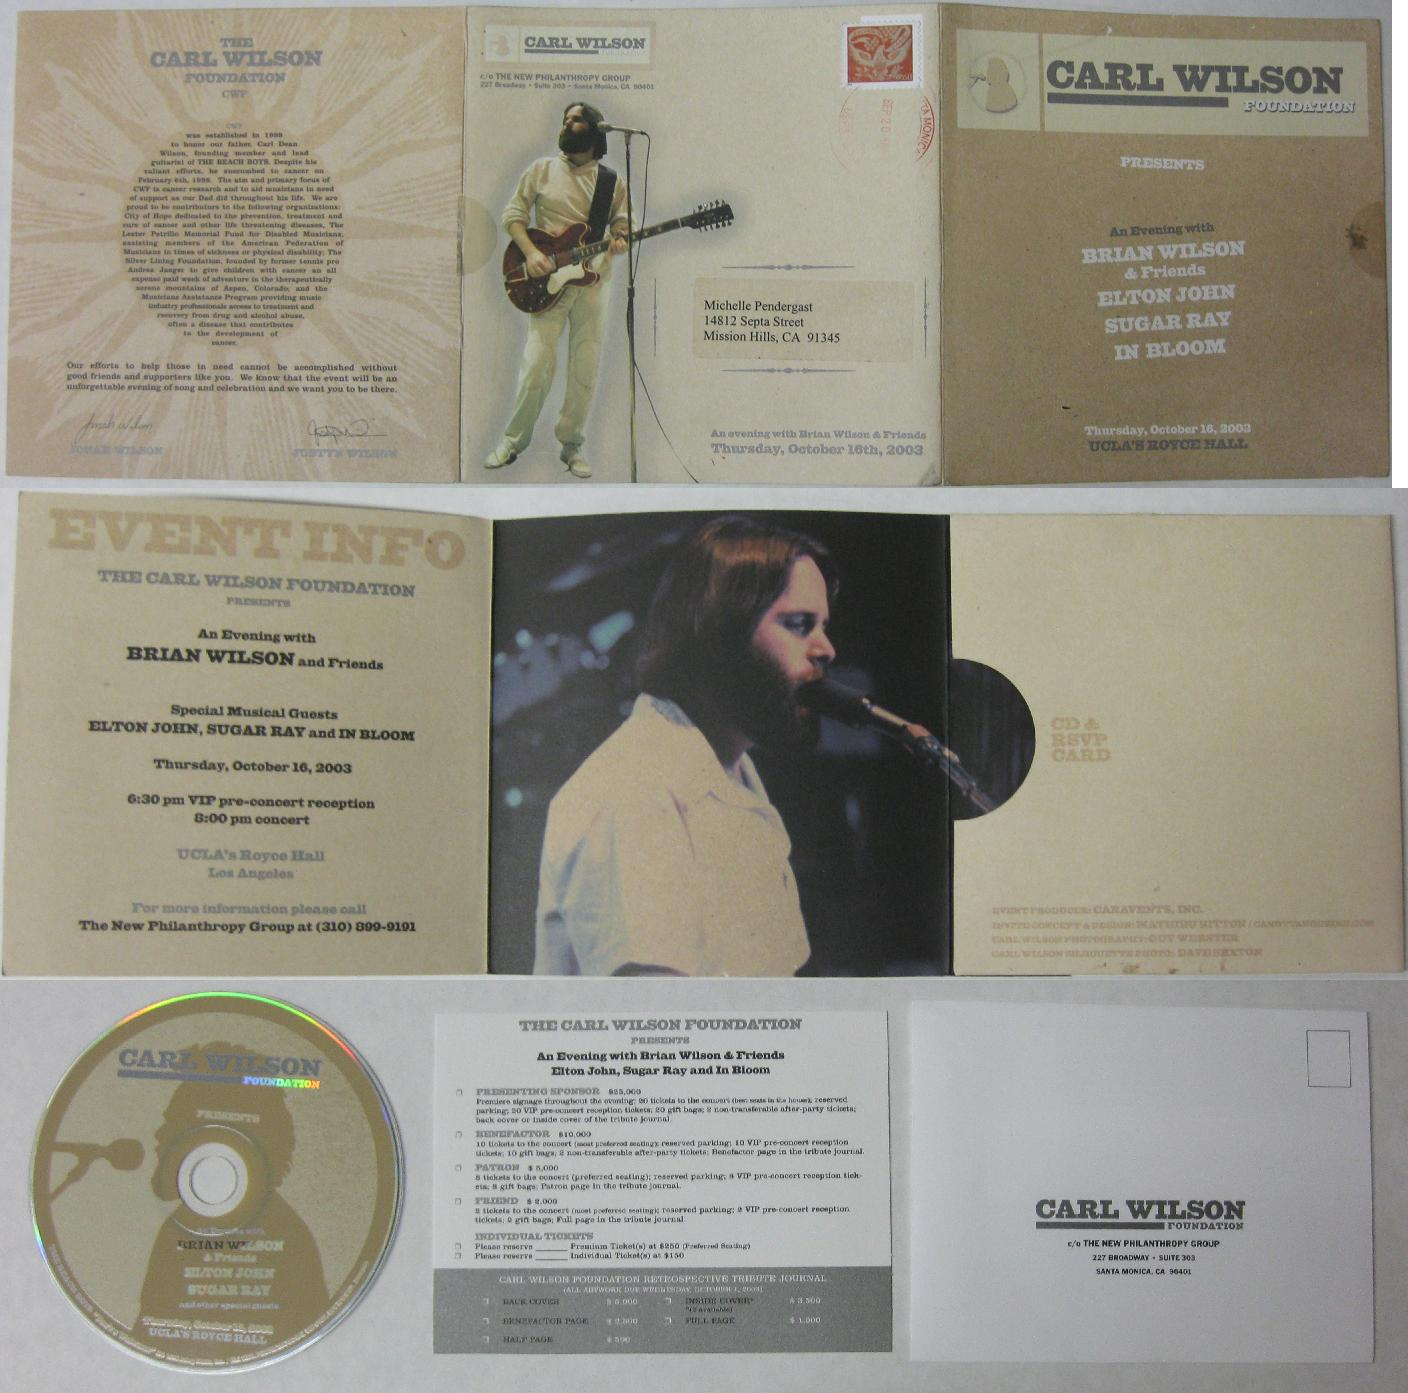 Carl Wilson Foundation